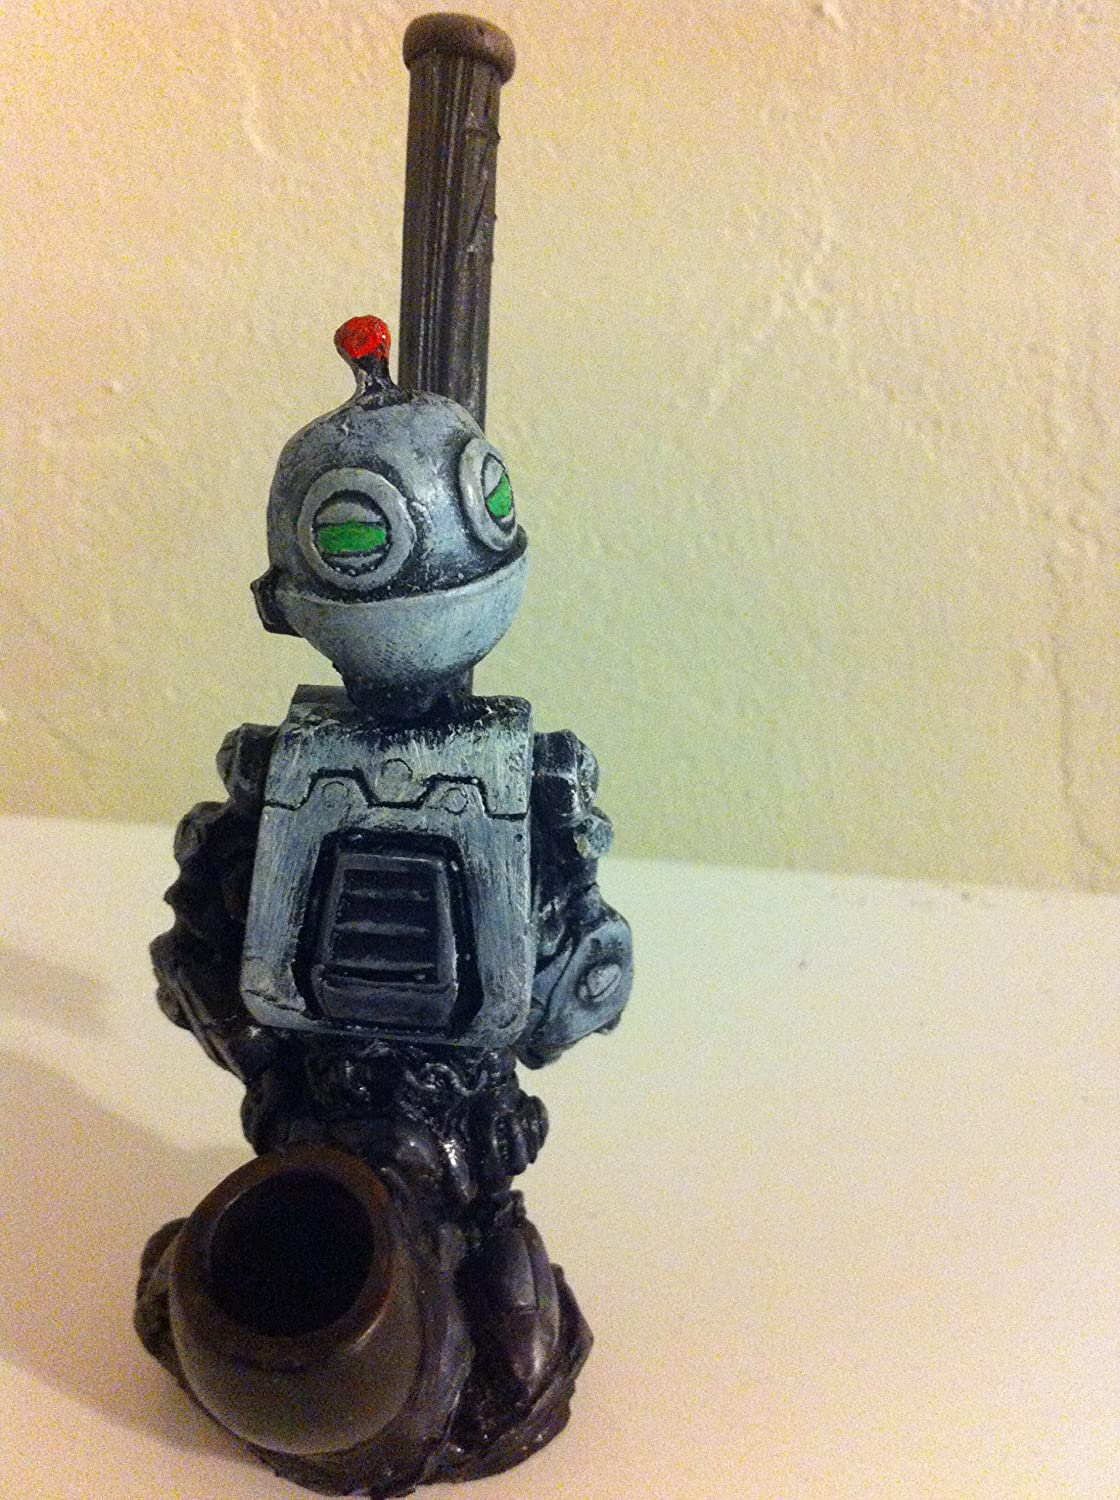 Handmade Clank Robot from Ratchet & Clank Tobacco Pipe